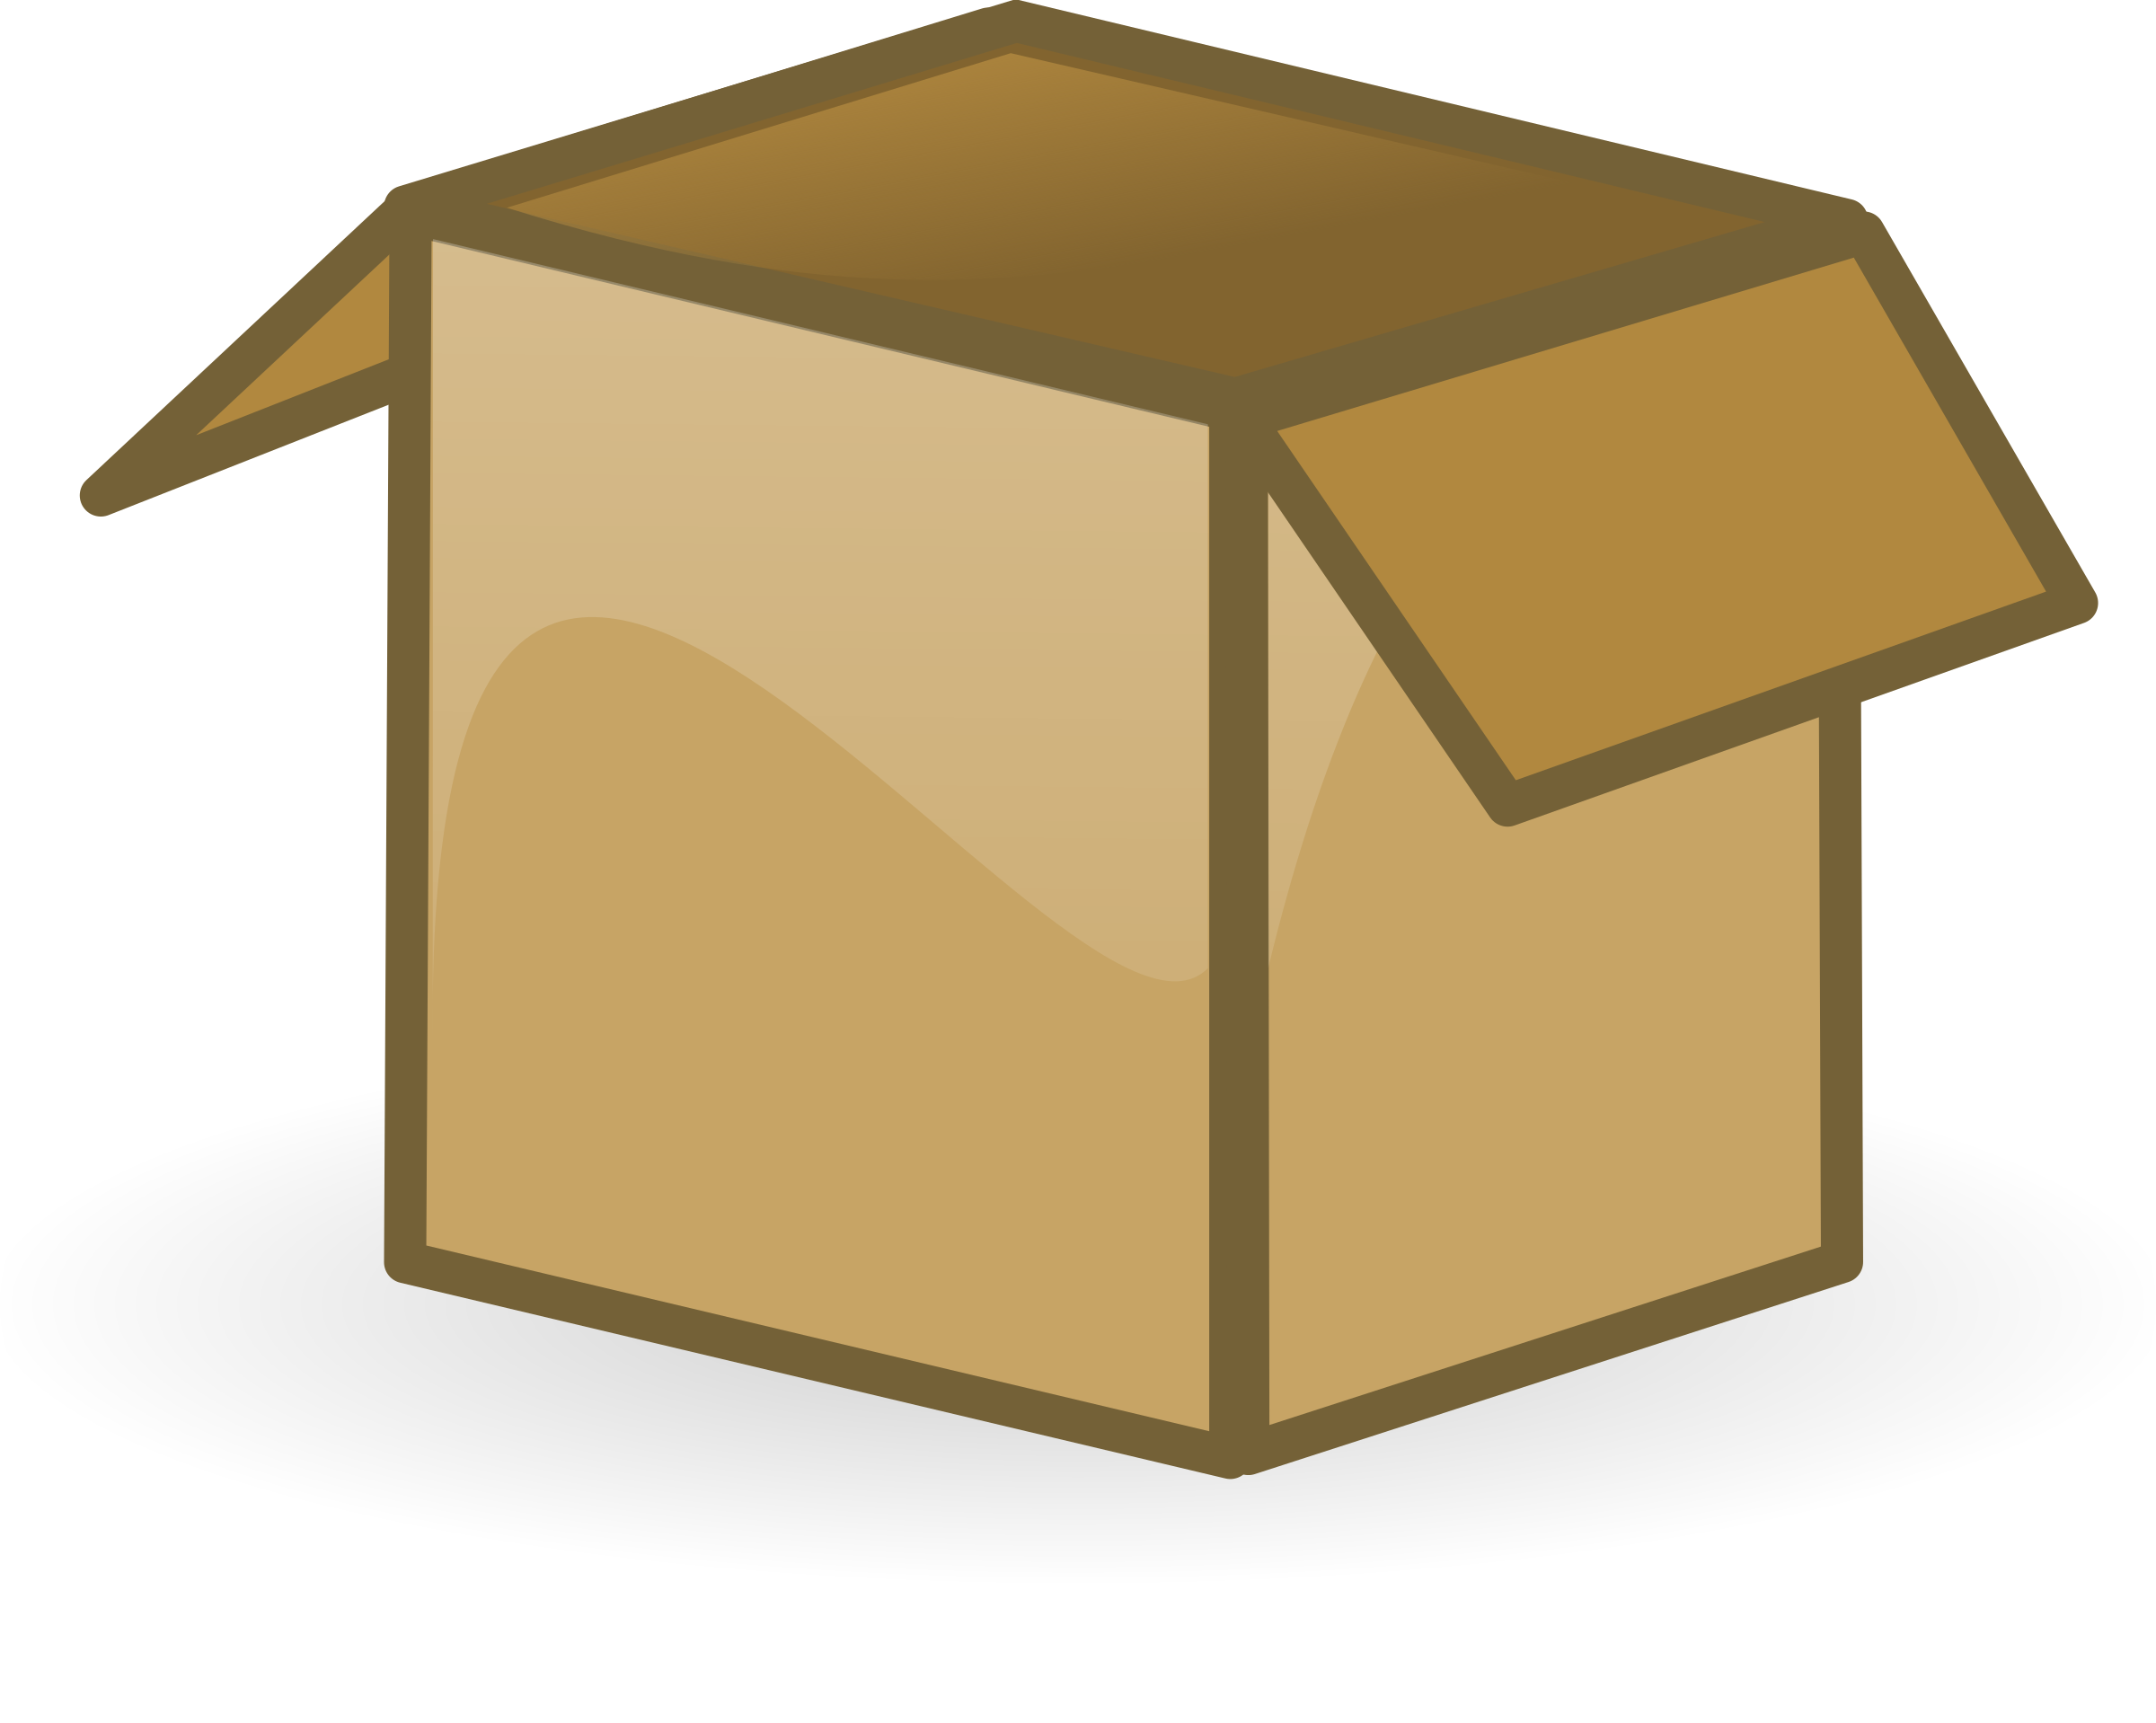 open box by mcol